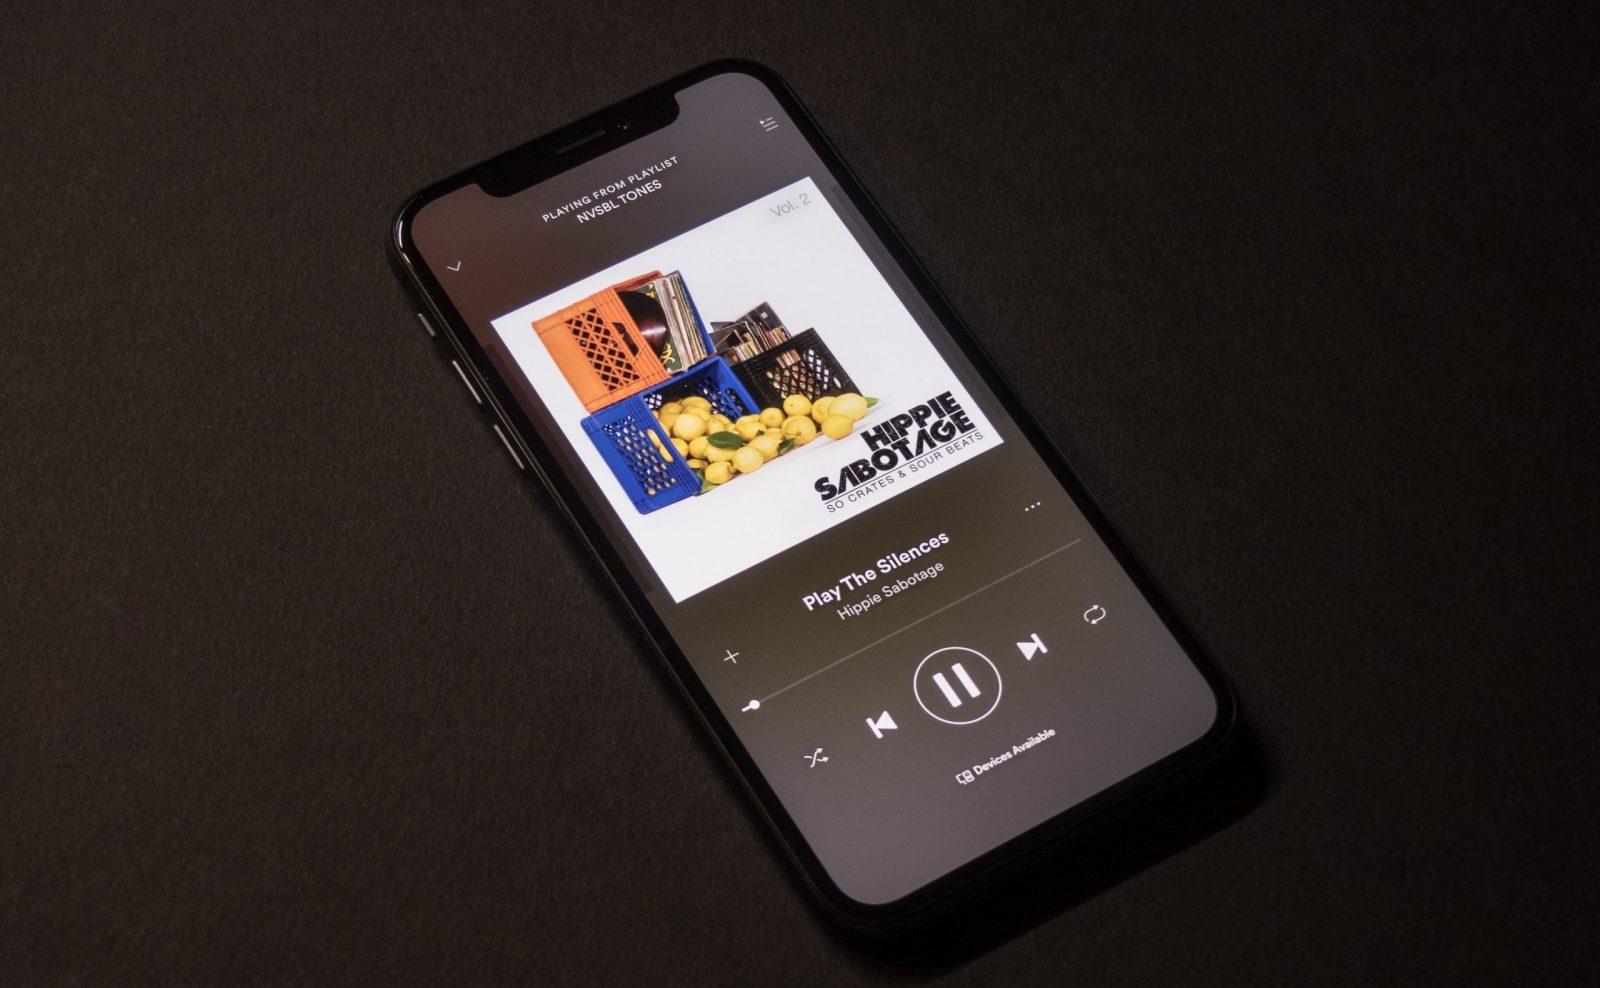 Spotify Letting Artists Promote Their Songs for Lower Royalties